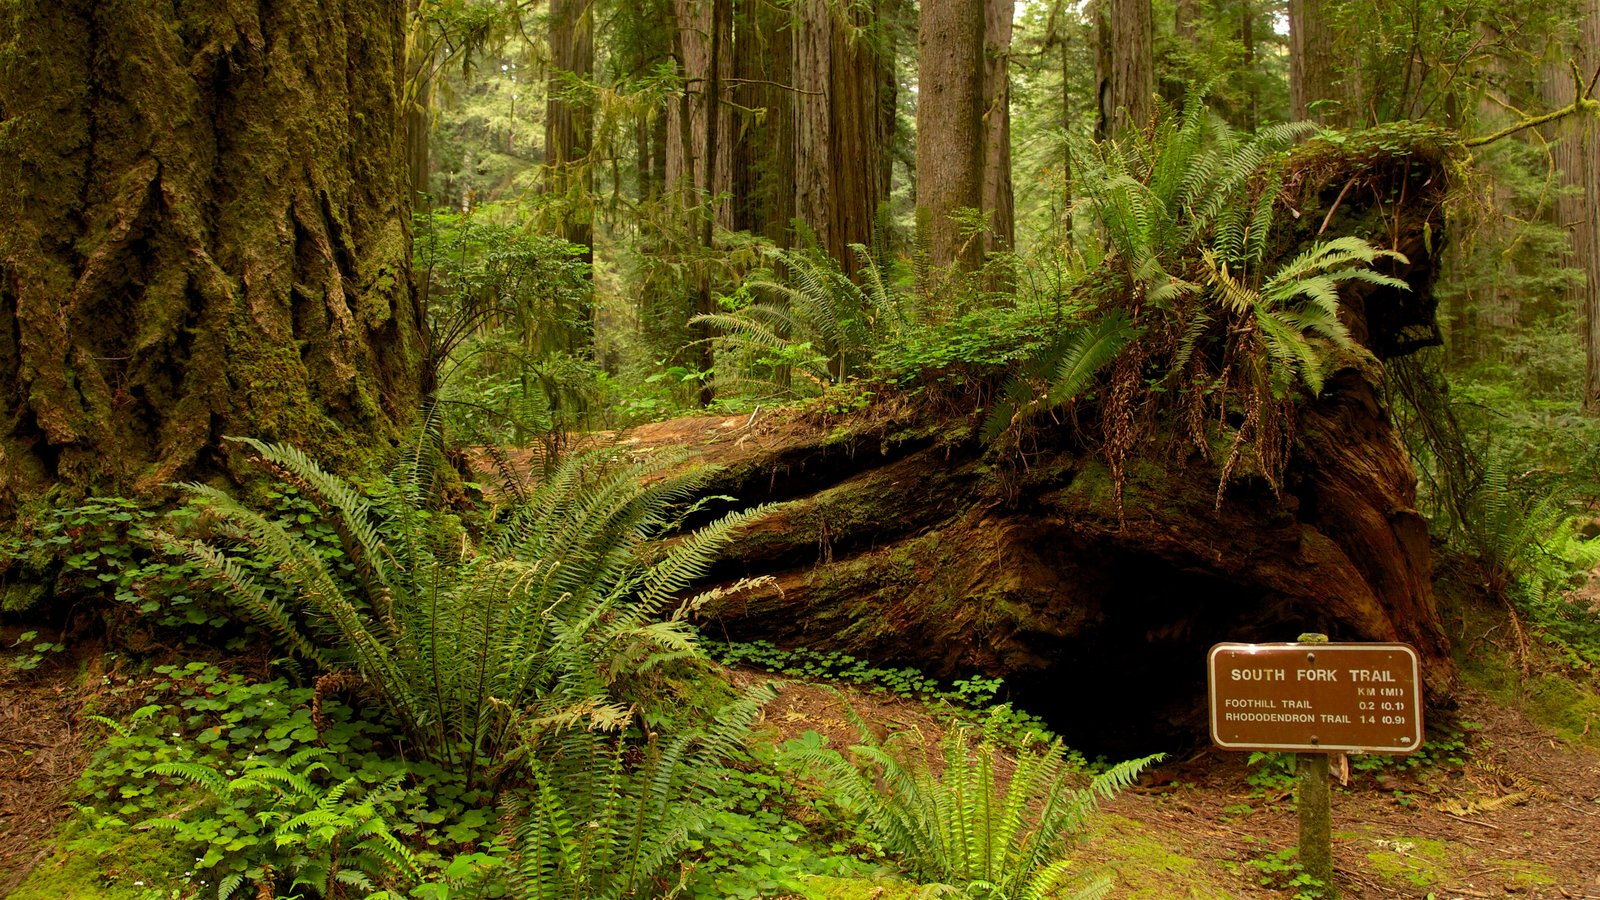 Redwood National and State Parks which includes forest scenes and signage